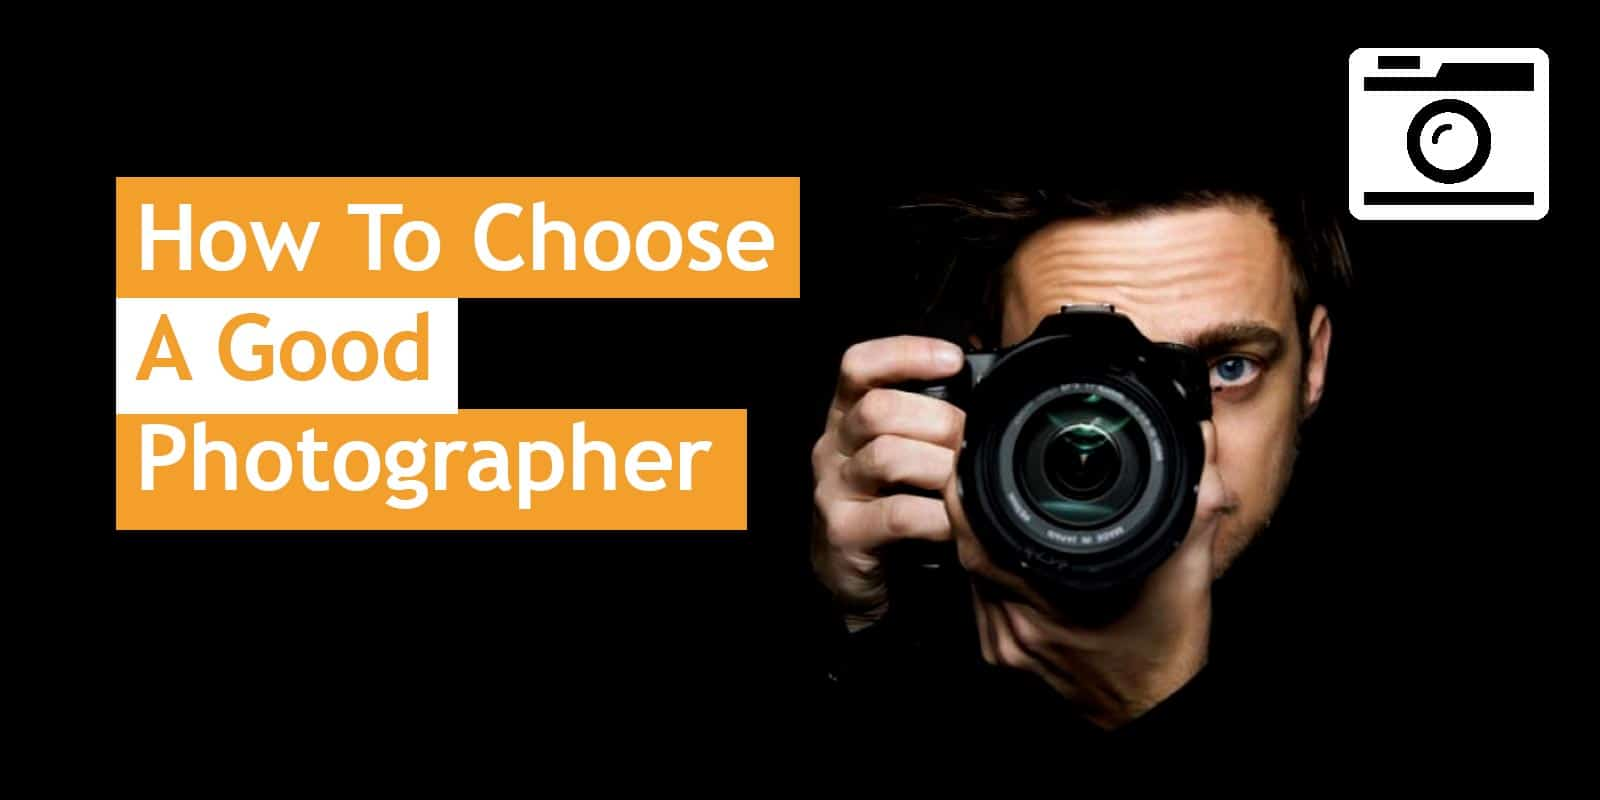 Header - how to choose a good photographer